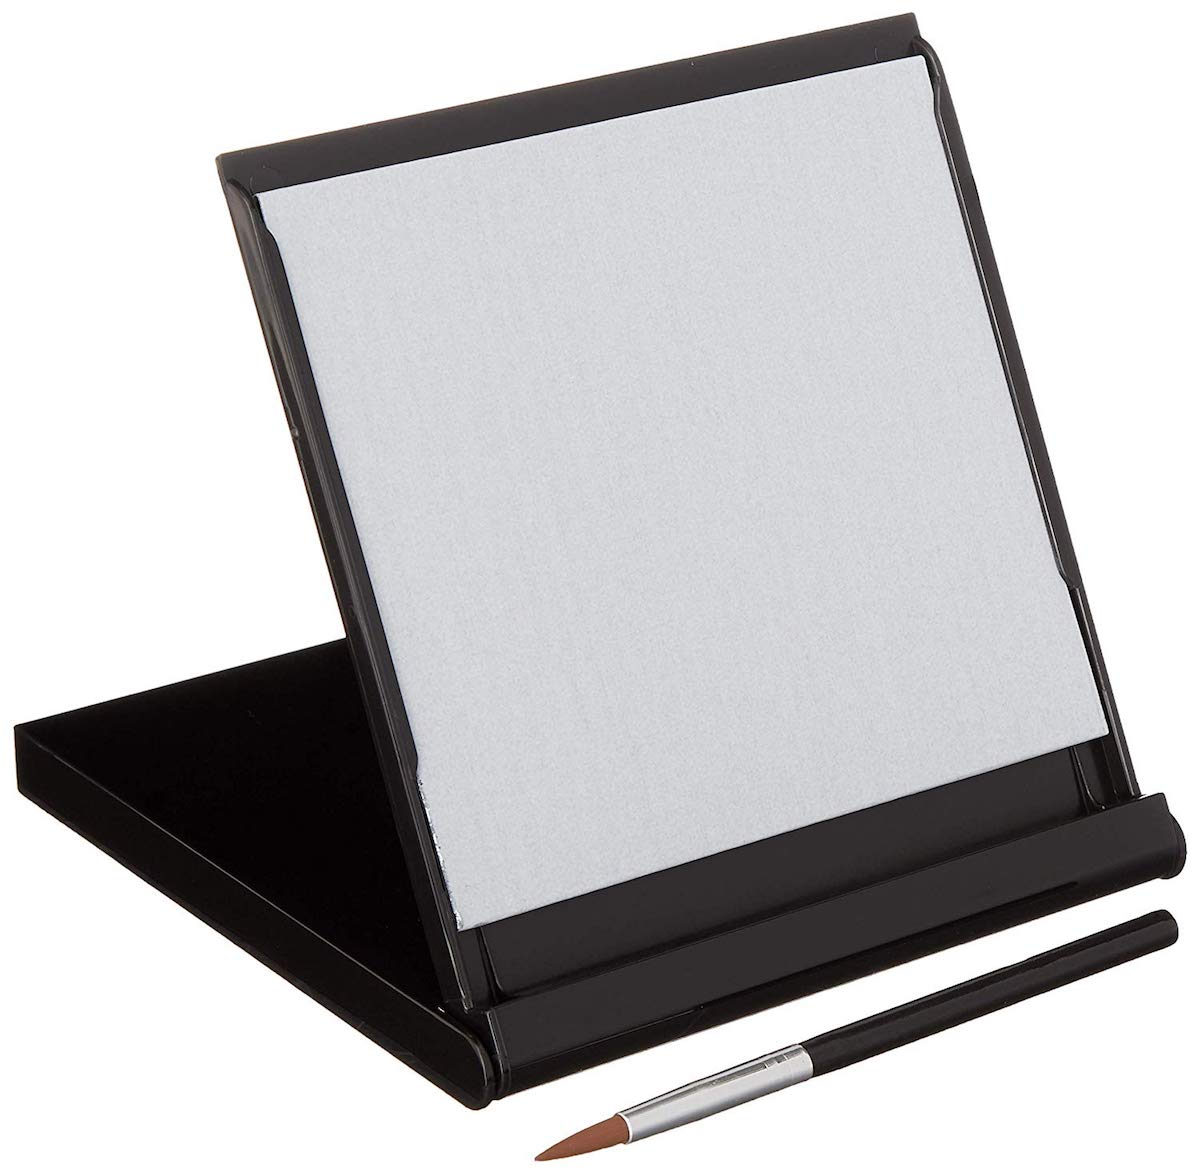 Best Gifts for Person You Don't Know Very Well, buddha board with brush